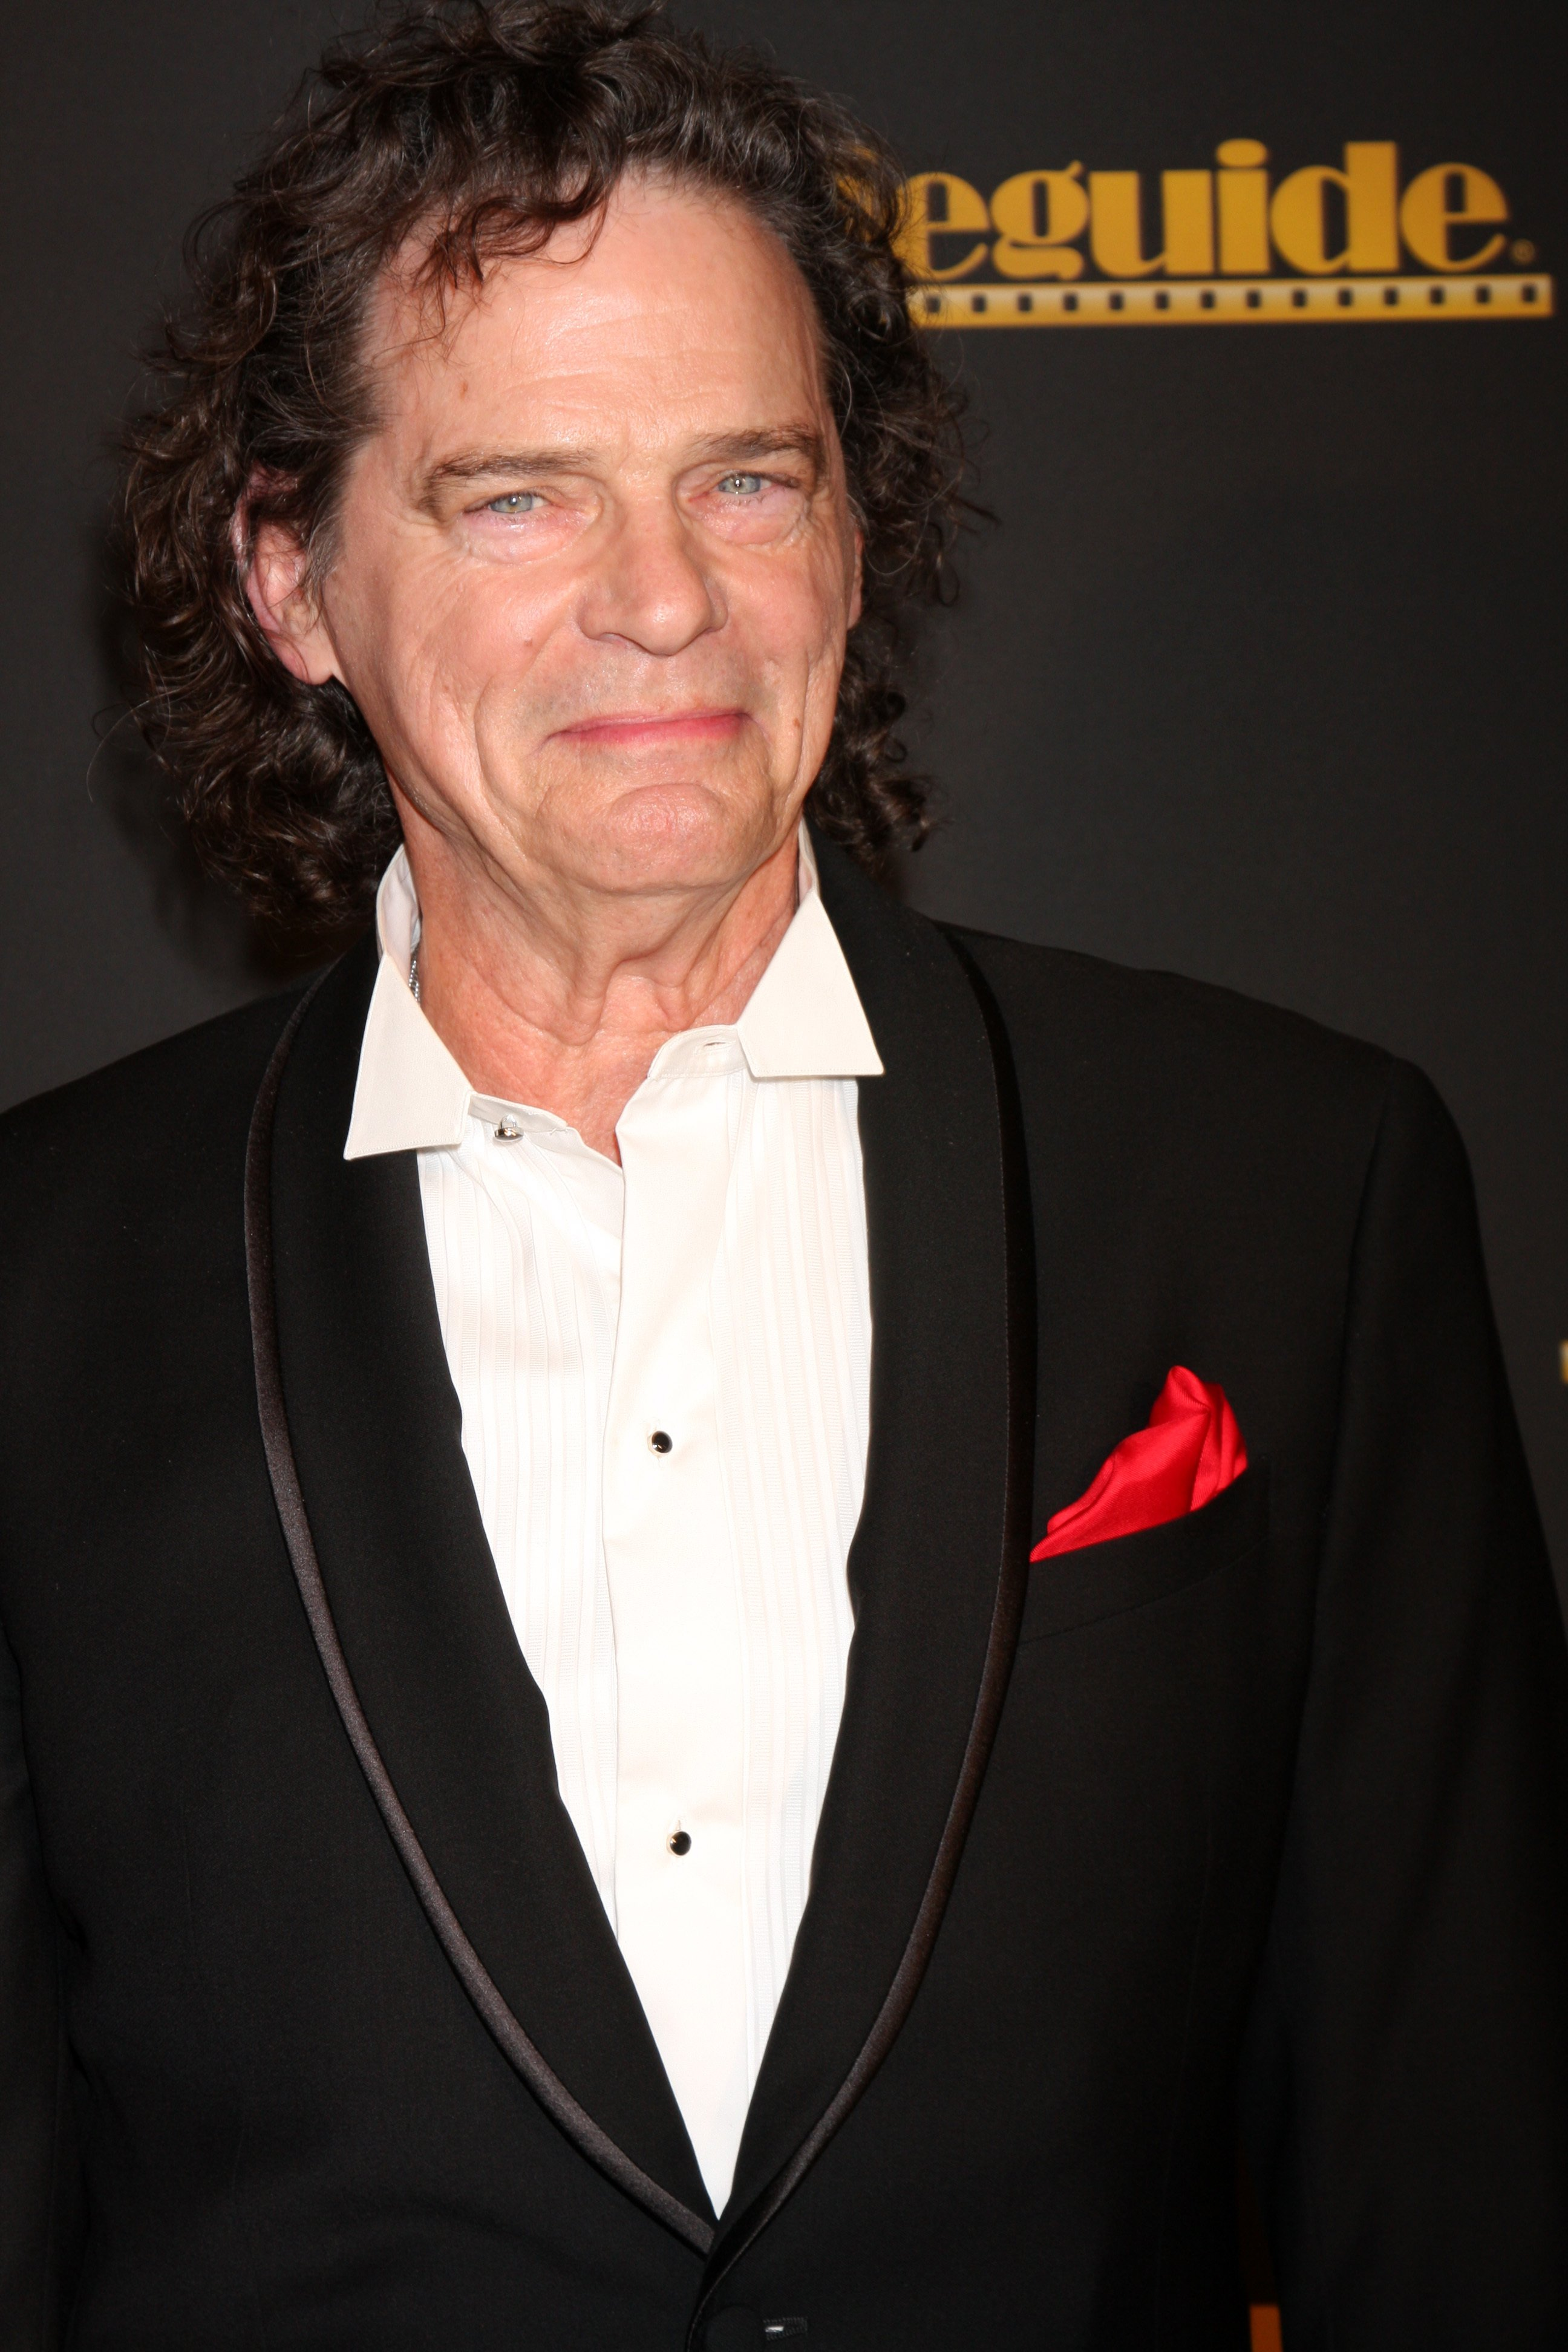 BJ Thomas arrives at the 2012 Movieguide Awards at Universal Hilton Hotel on February 10, 2012 in Universal City, CA | Photo: Shutterstock